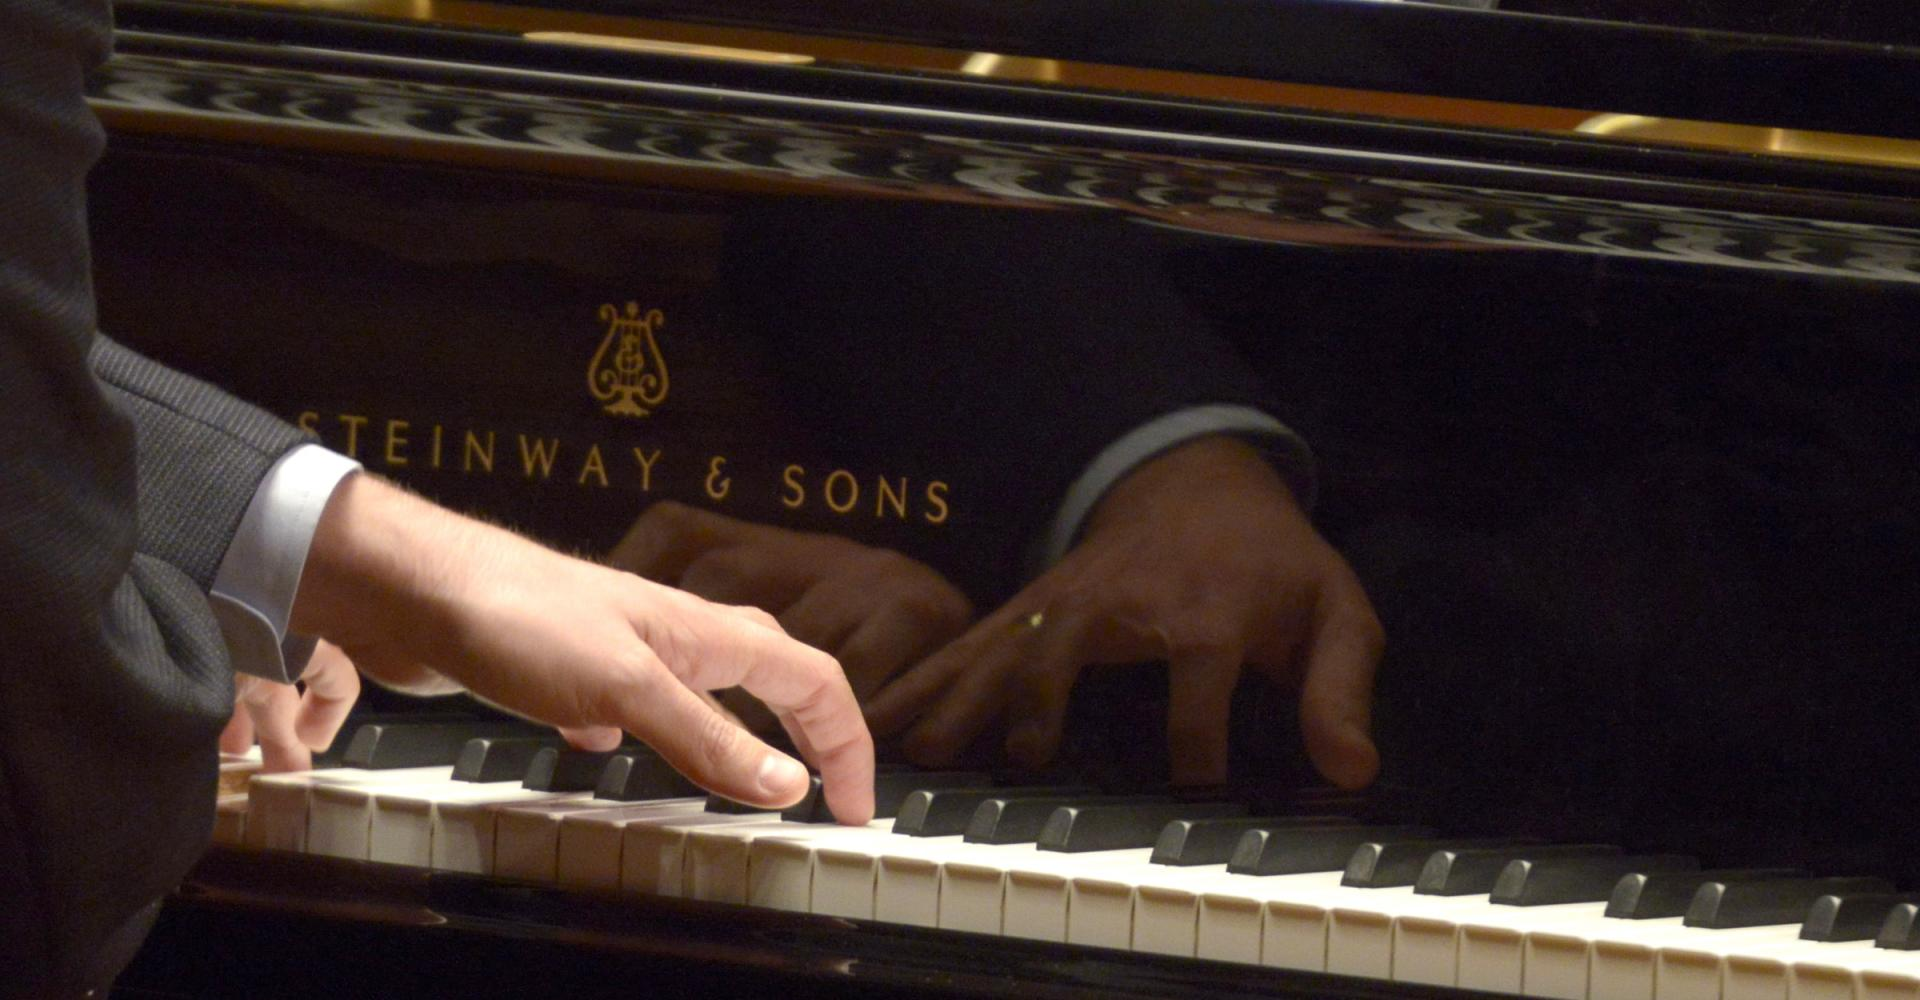 A piano player's hands playing piano.